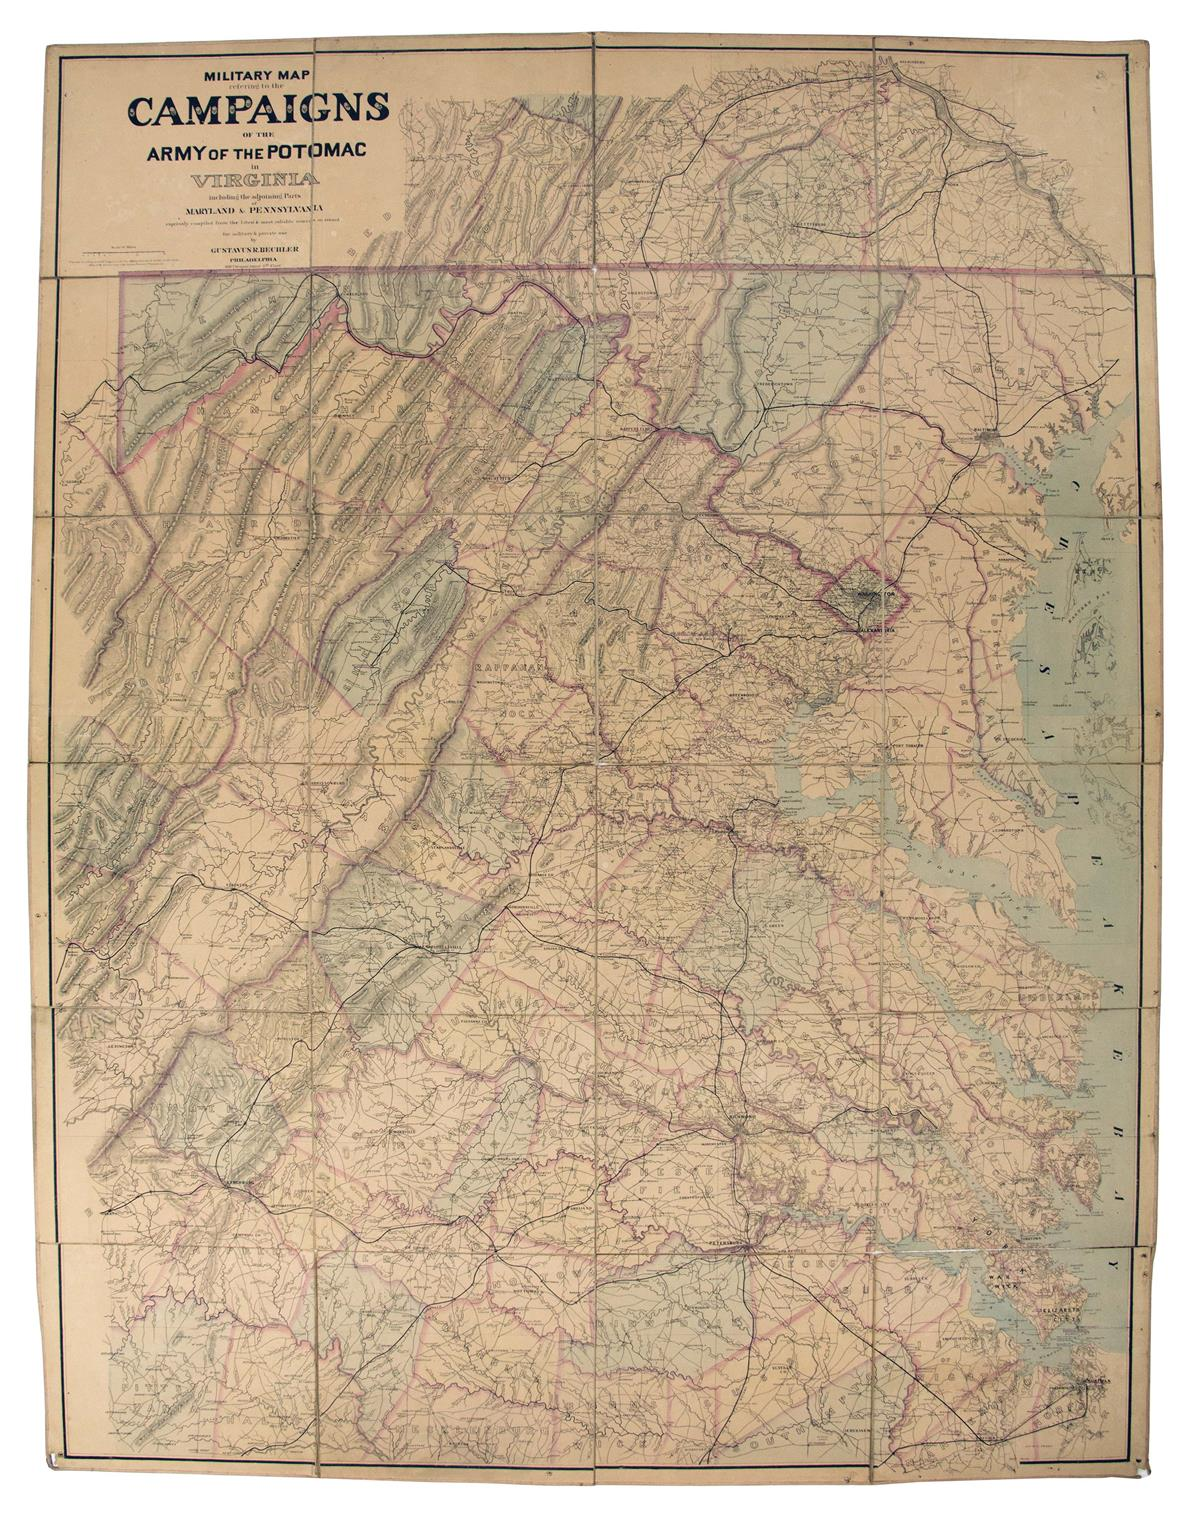 (CIVIL-WAR)-Bechler-Gustavus-R-Military-Map-Refering-to-the-